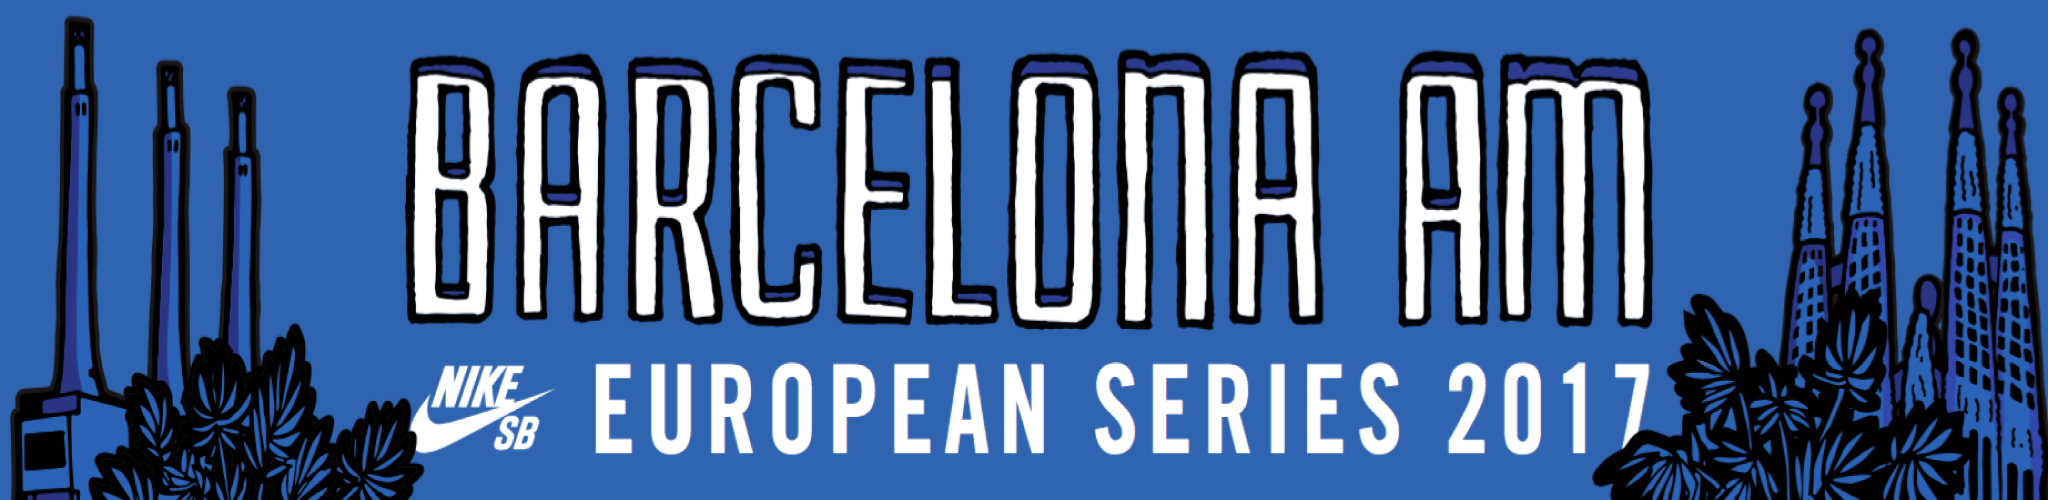 2017 NIKE SB EUROPEAN SERIES  – INSCRIPTIONS OPEN NOW!